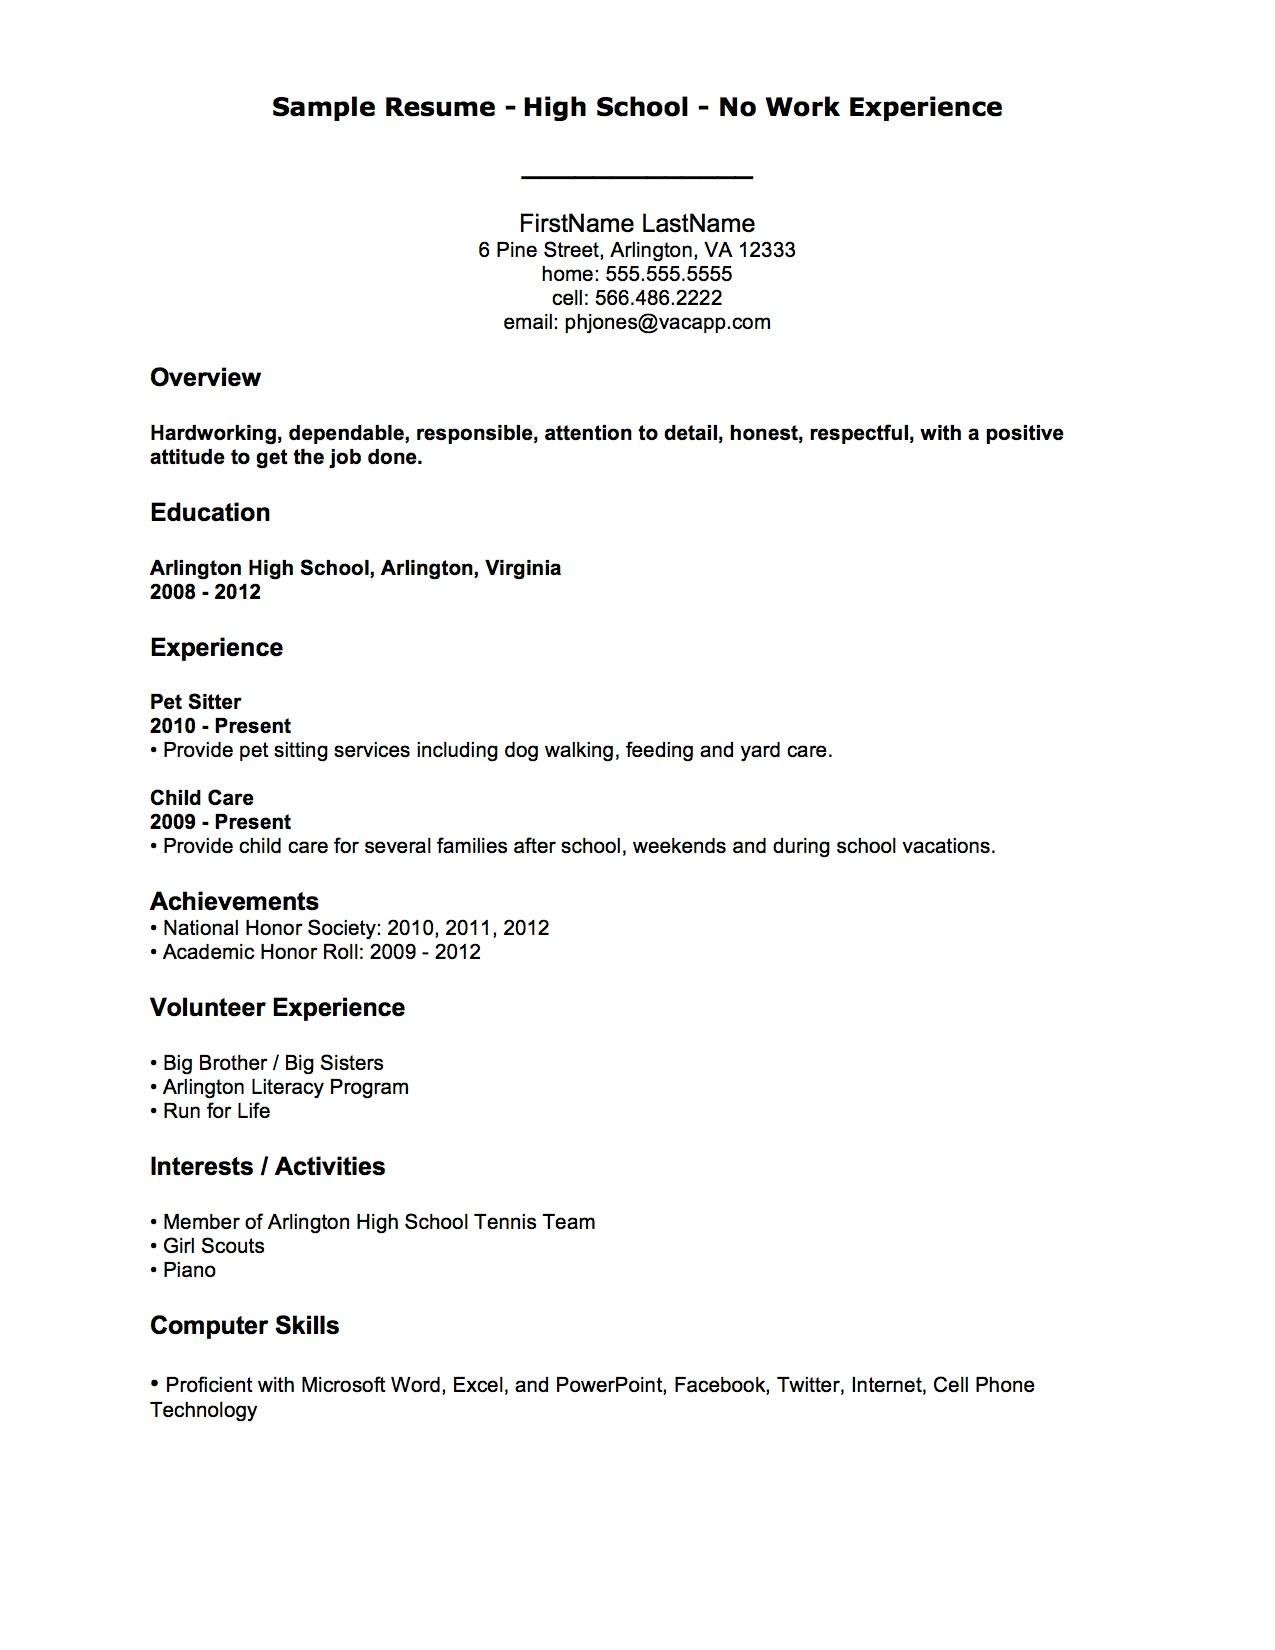 resume templates no work experience #experience #resume